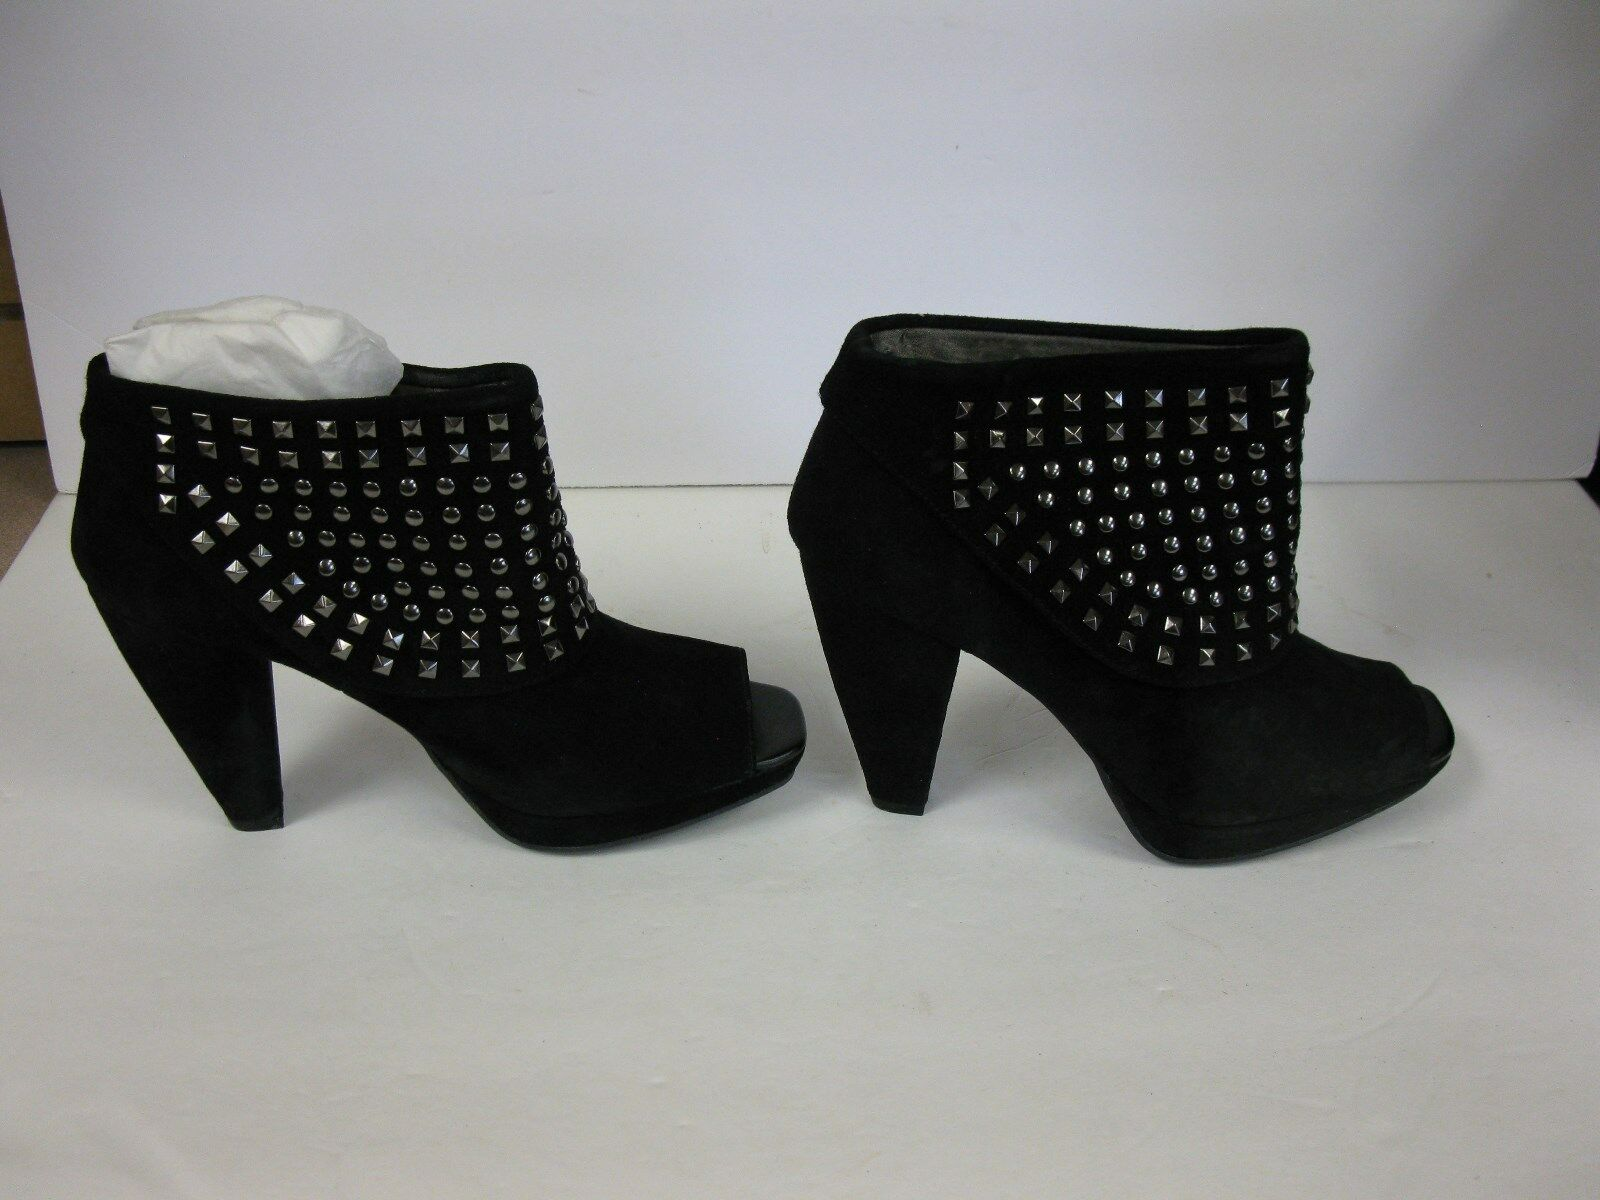 KENNETH COLE REACTION BLACK ANKLE BOOTS